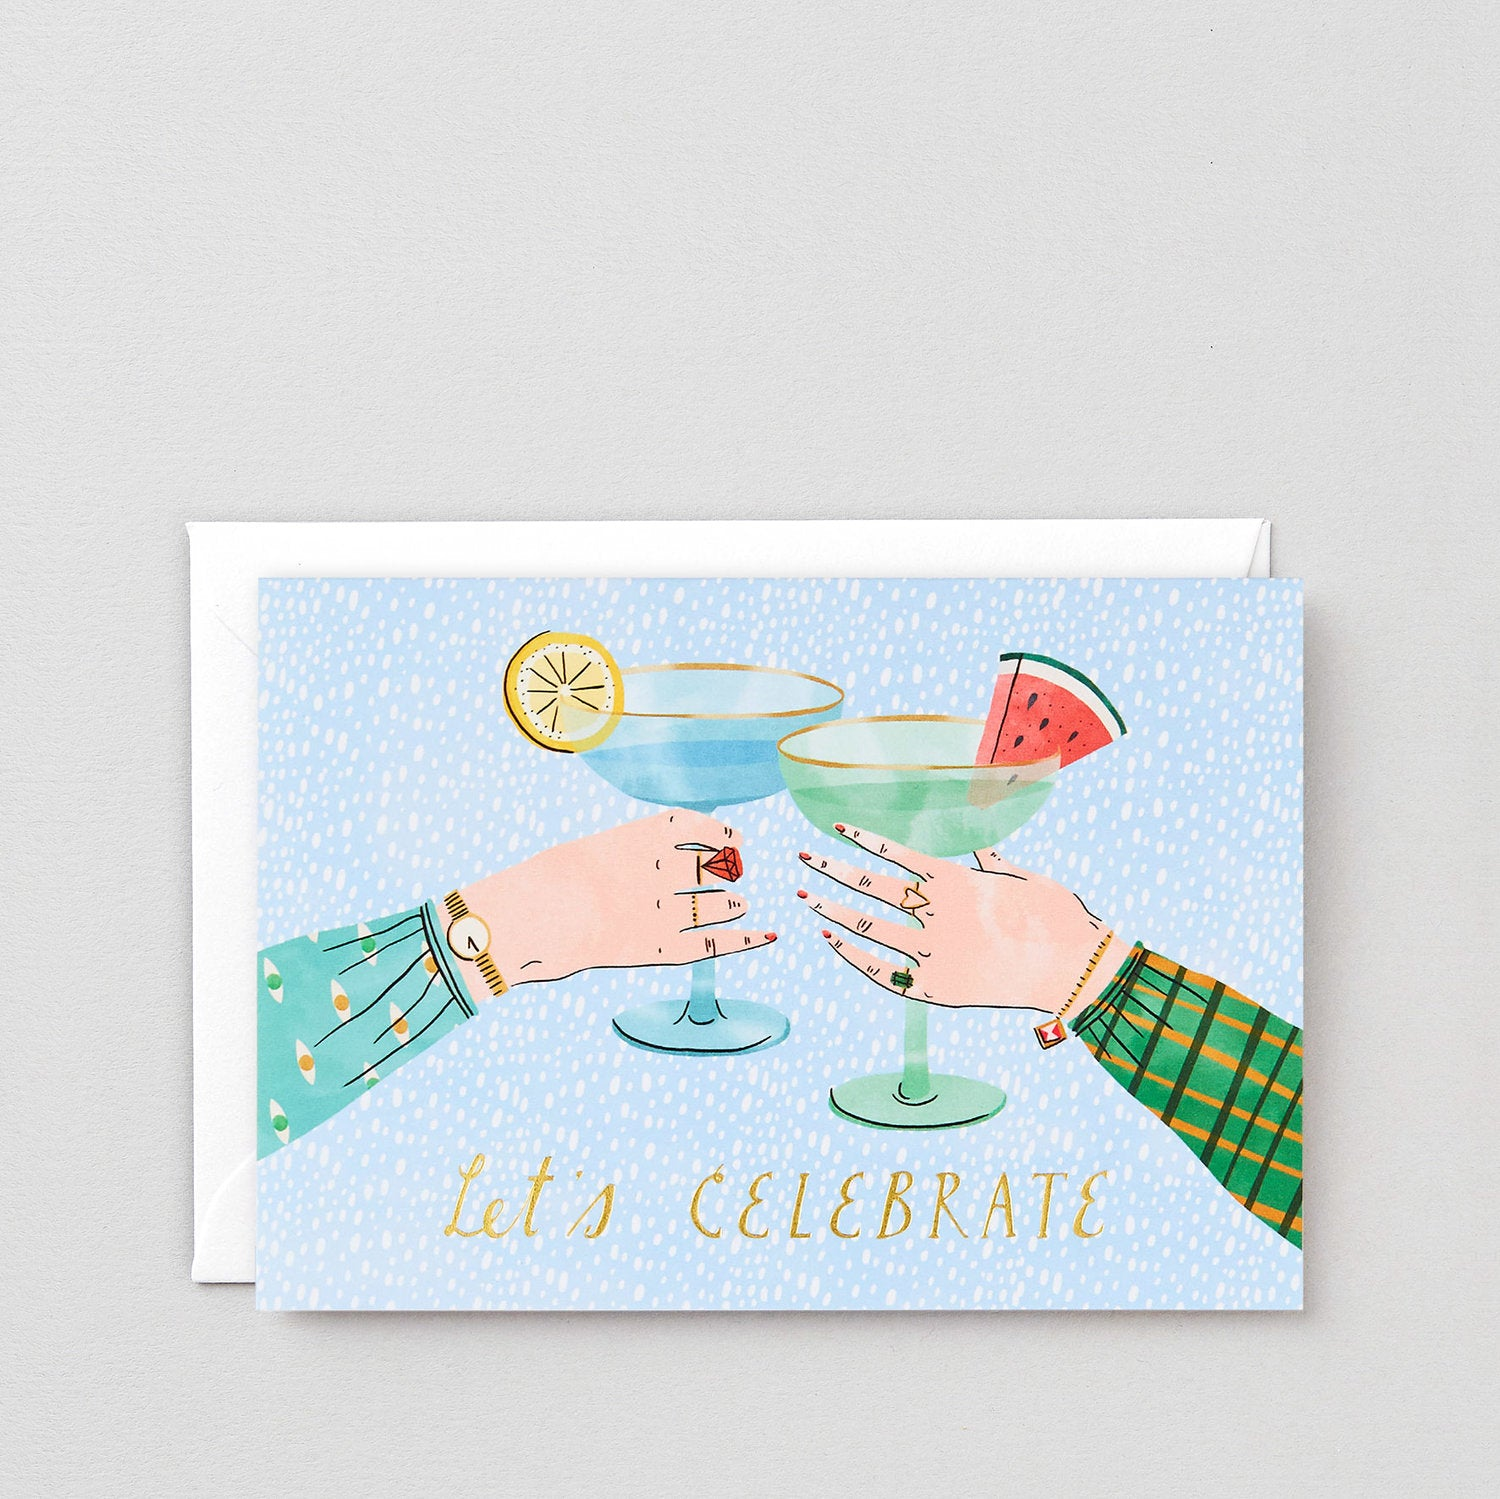 Greeting Card: Let's Celebrate